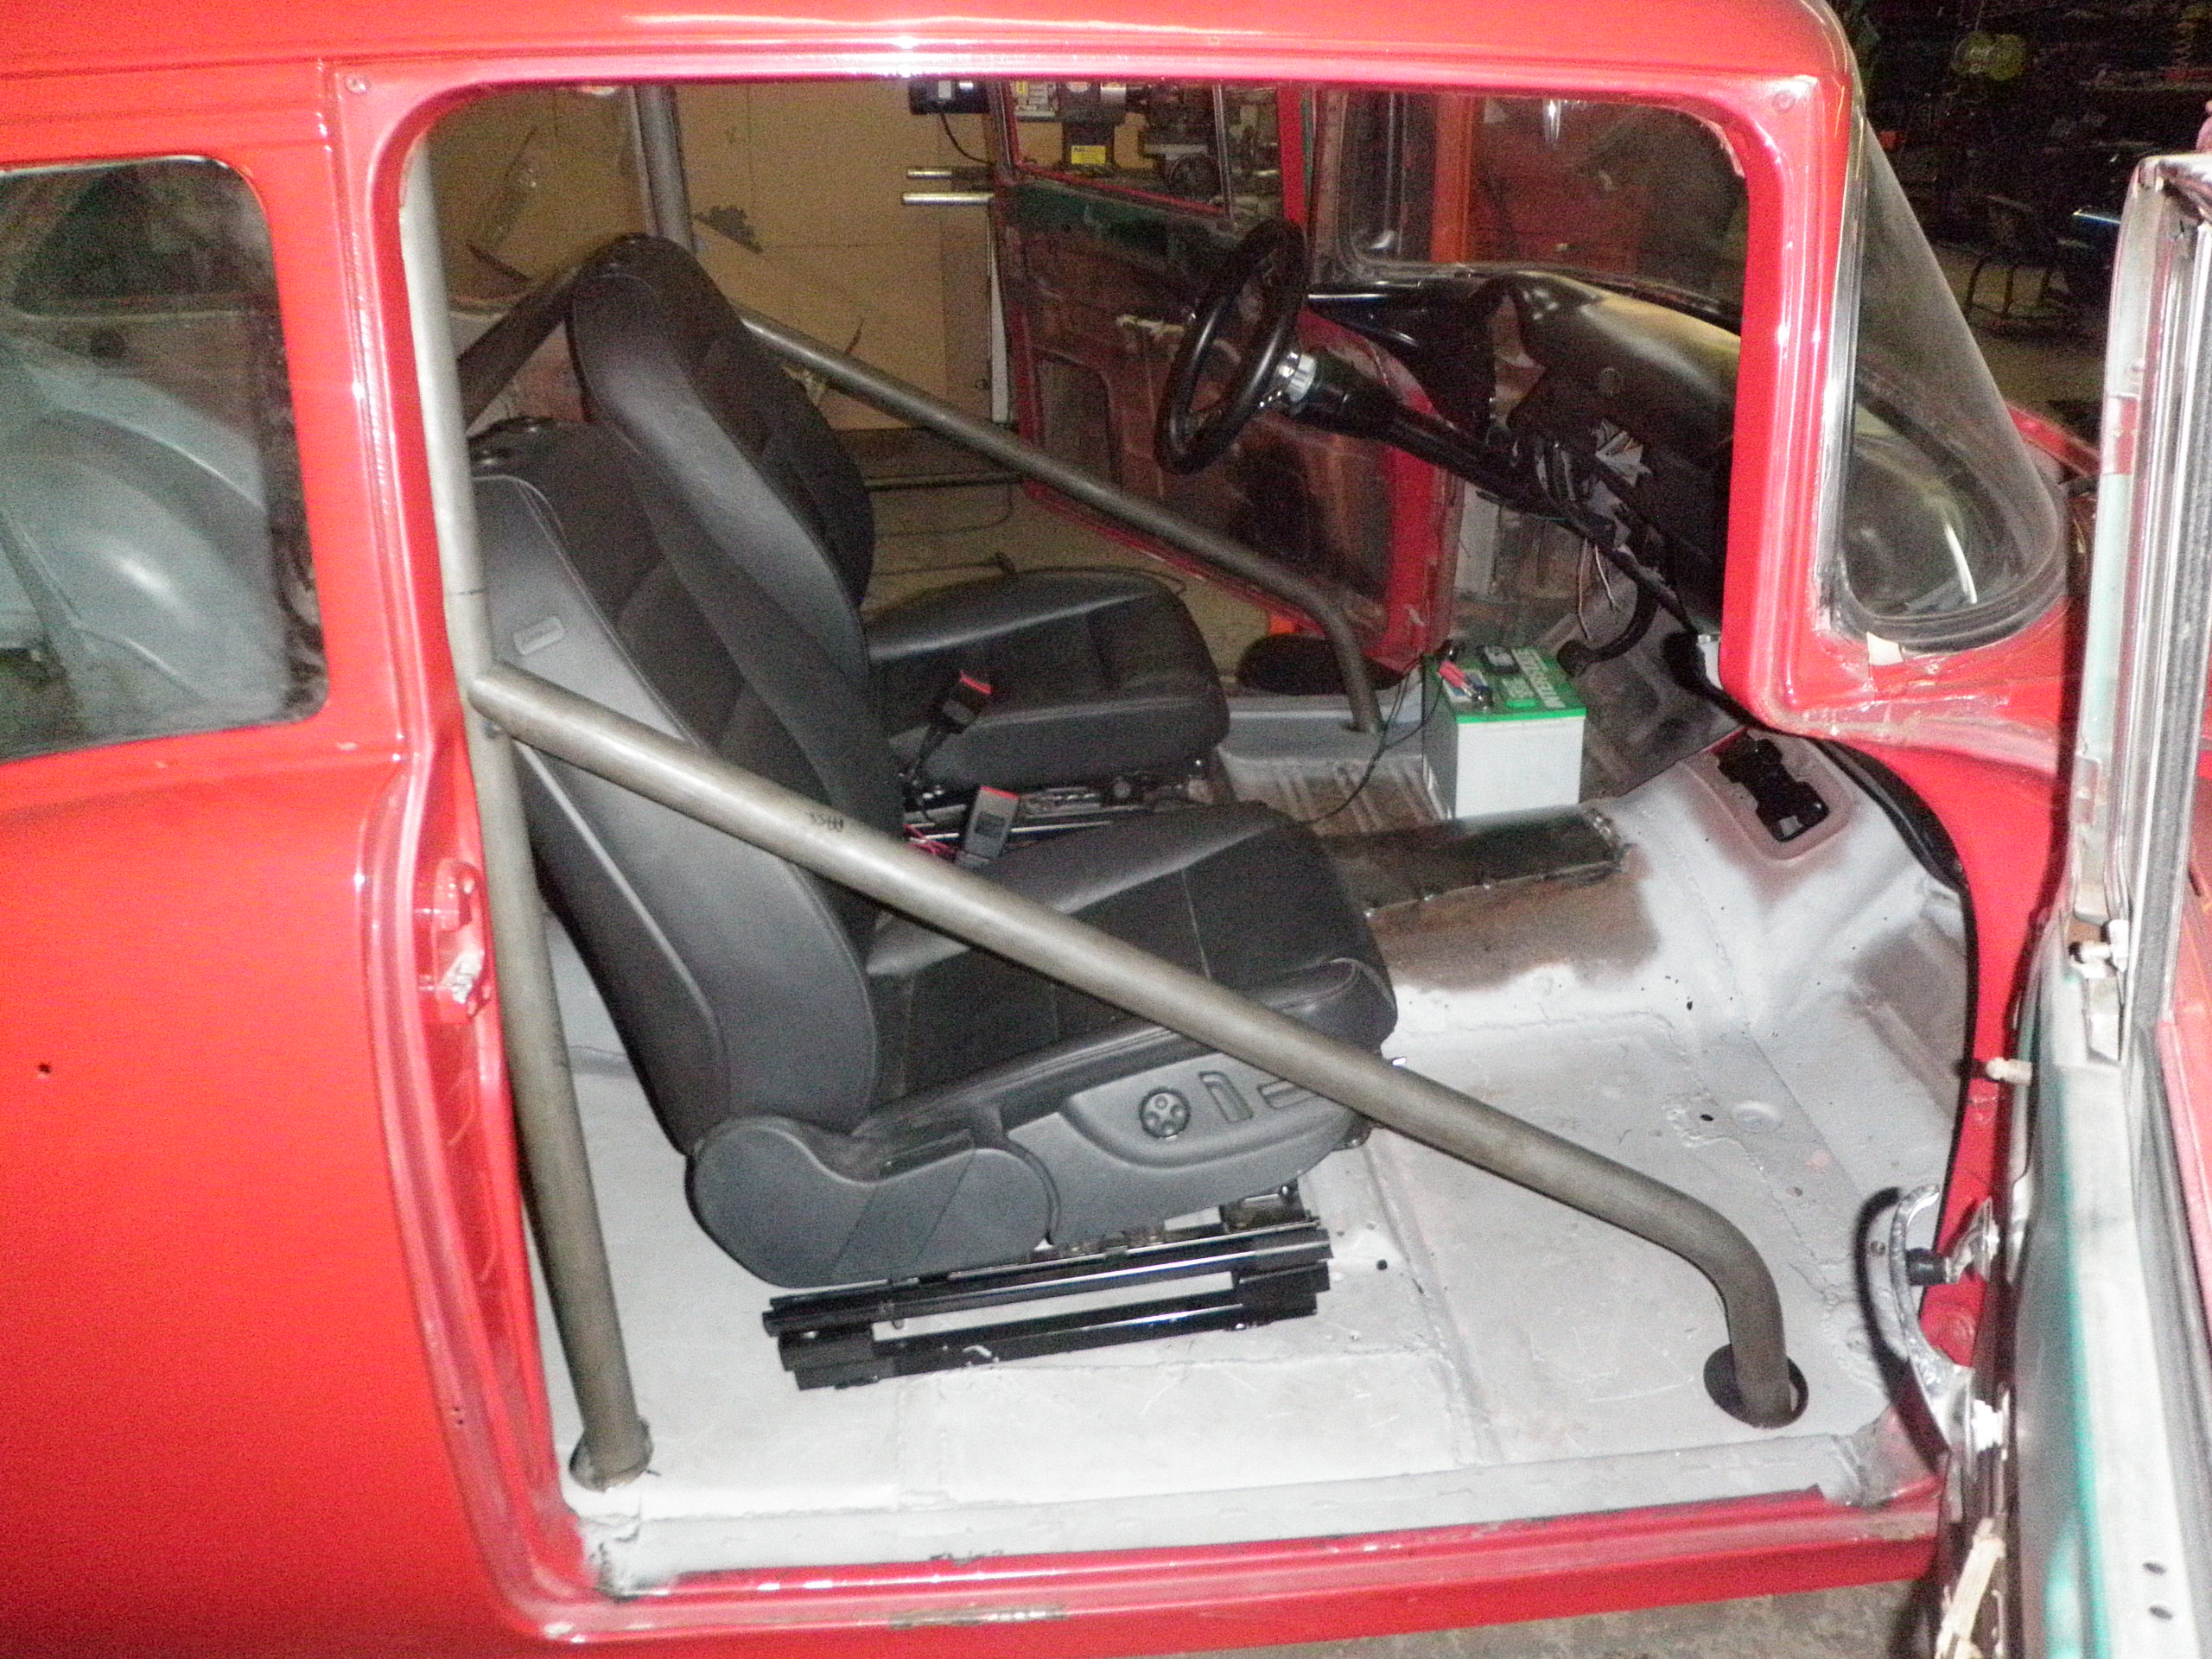 55 57 Chevy 6pt Exact Fit Roll Bar Wild Rides